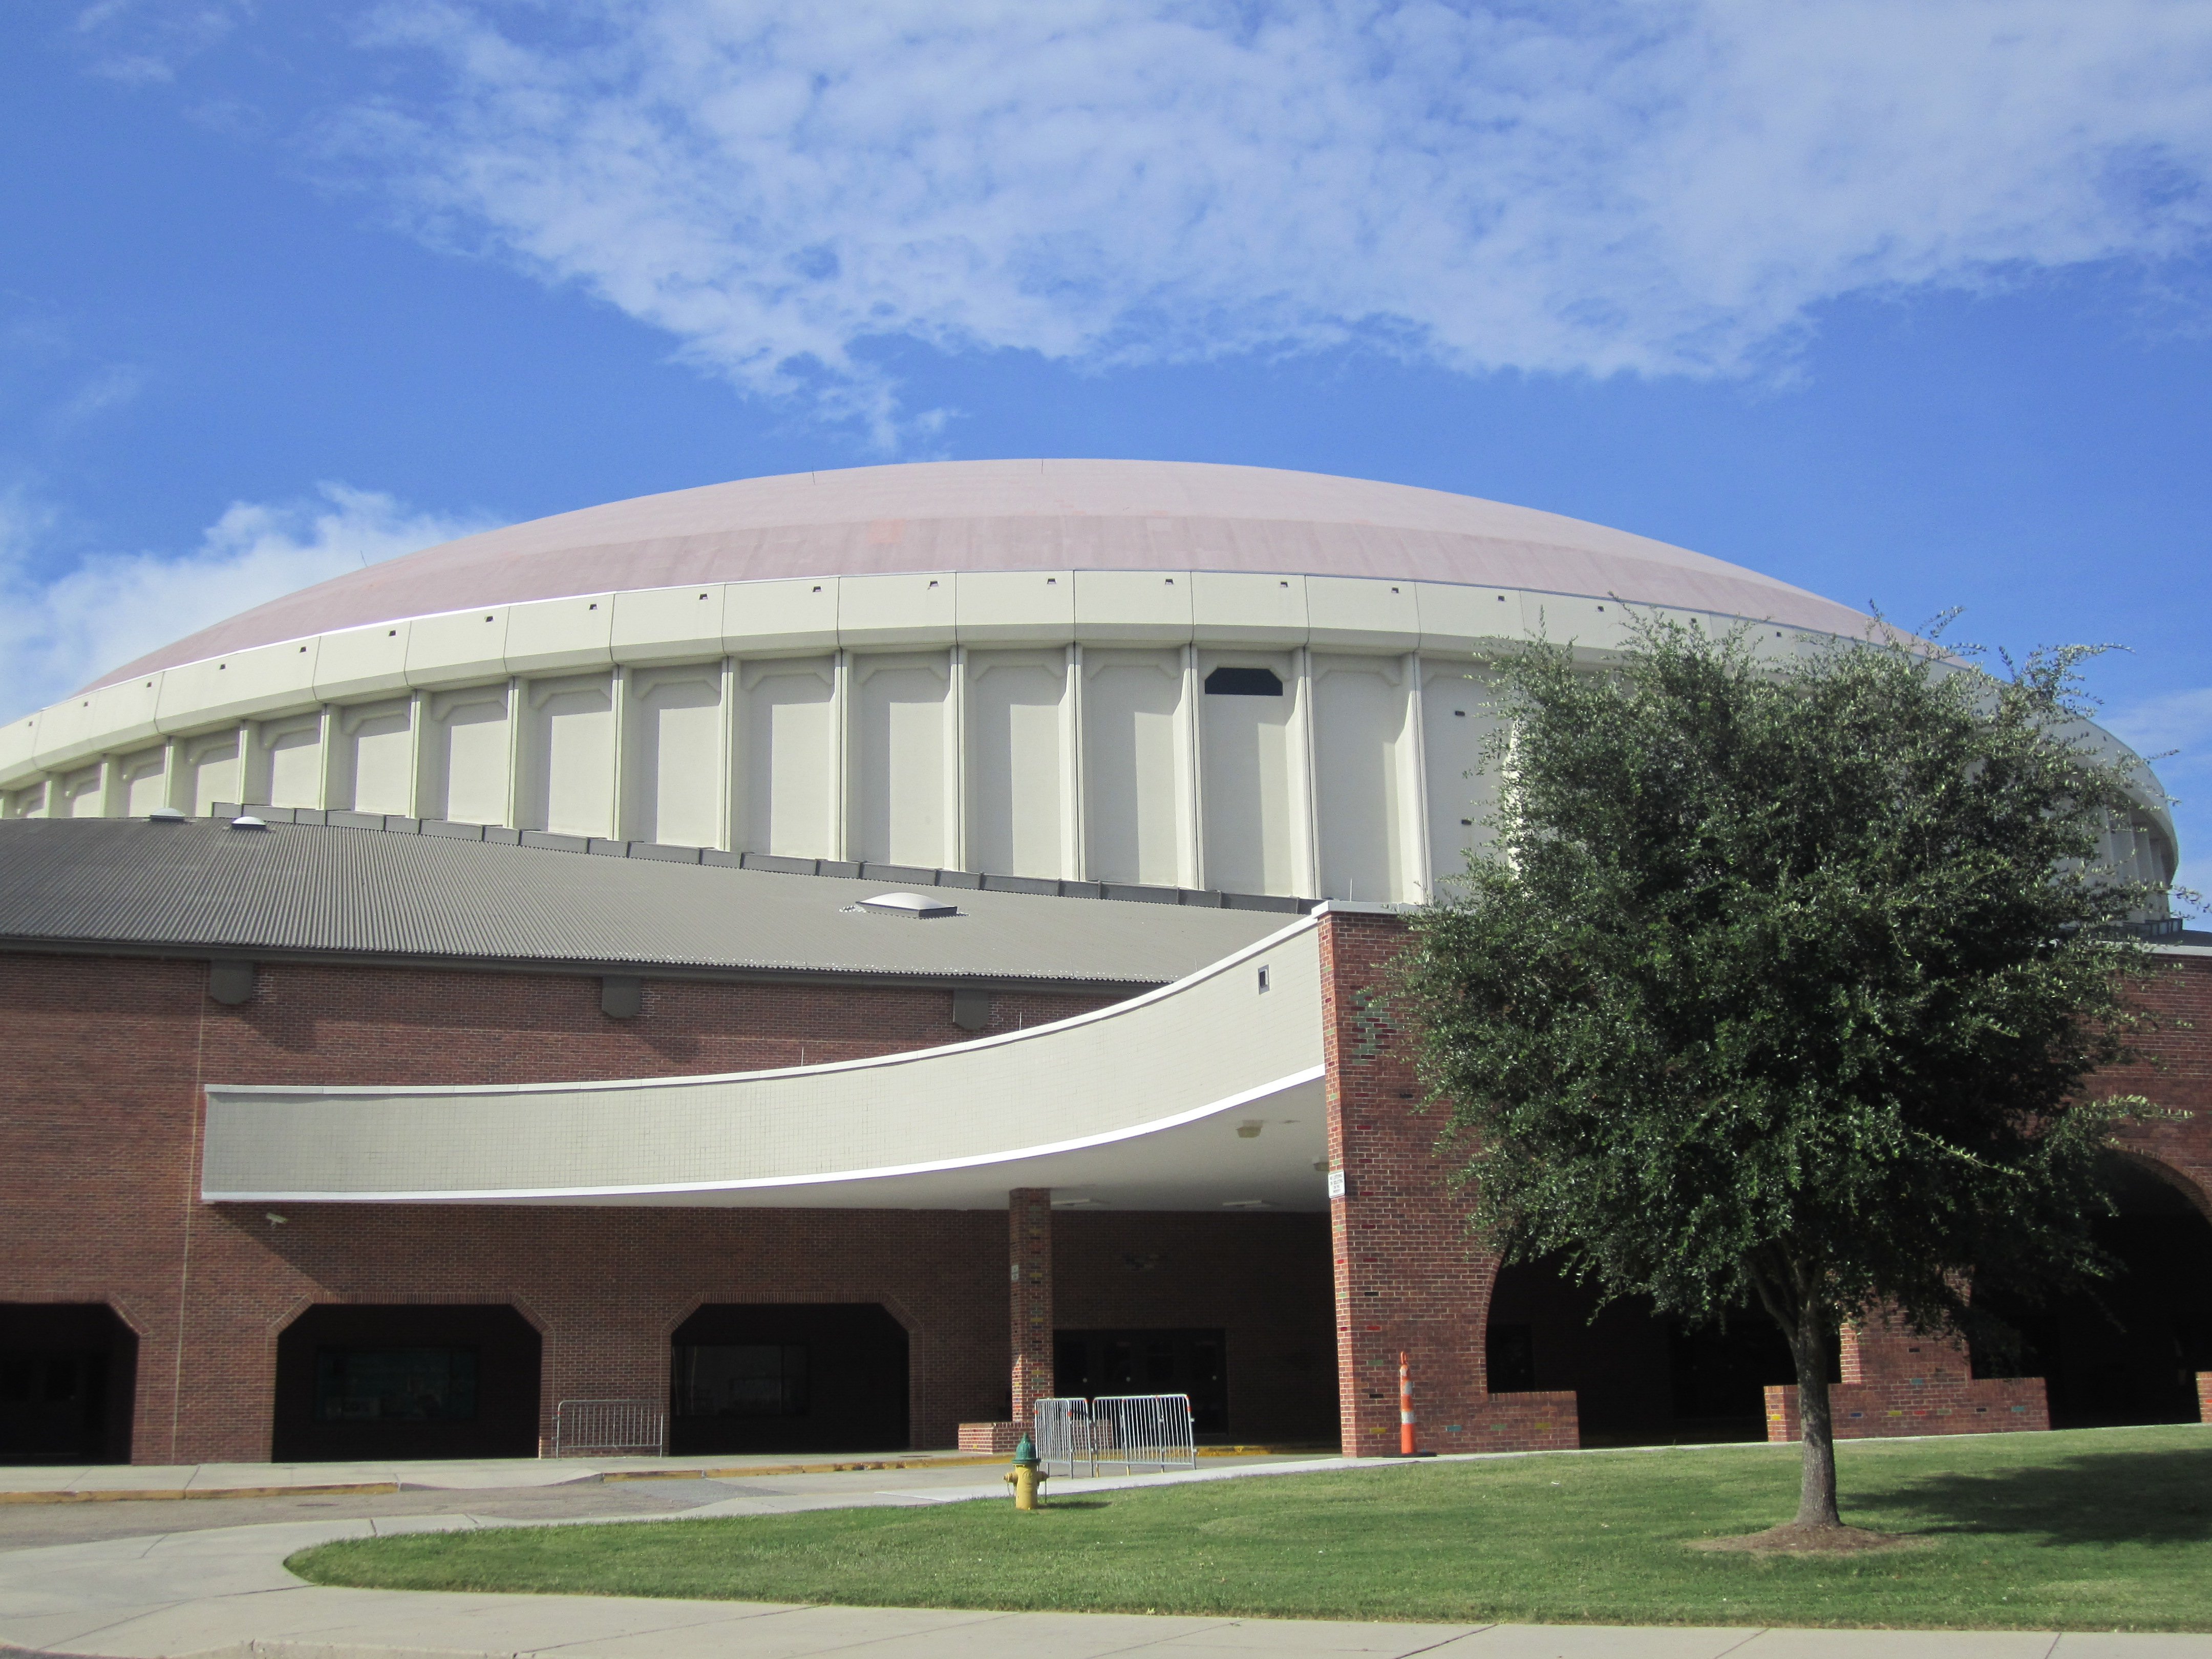 File:Another View Of The Cajundome In Lafayette, LA IMG